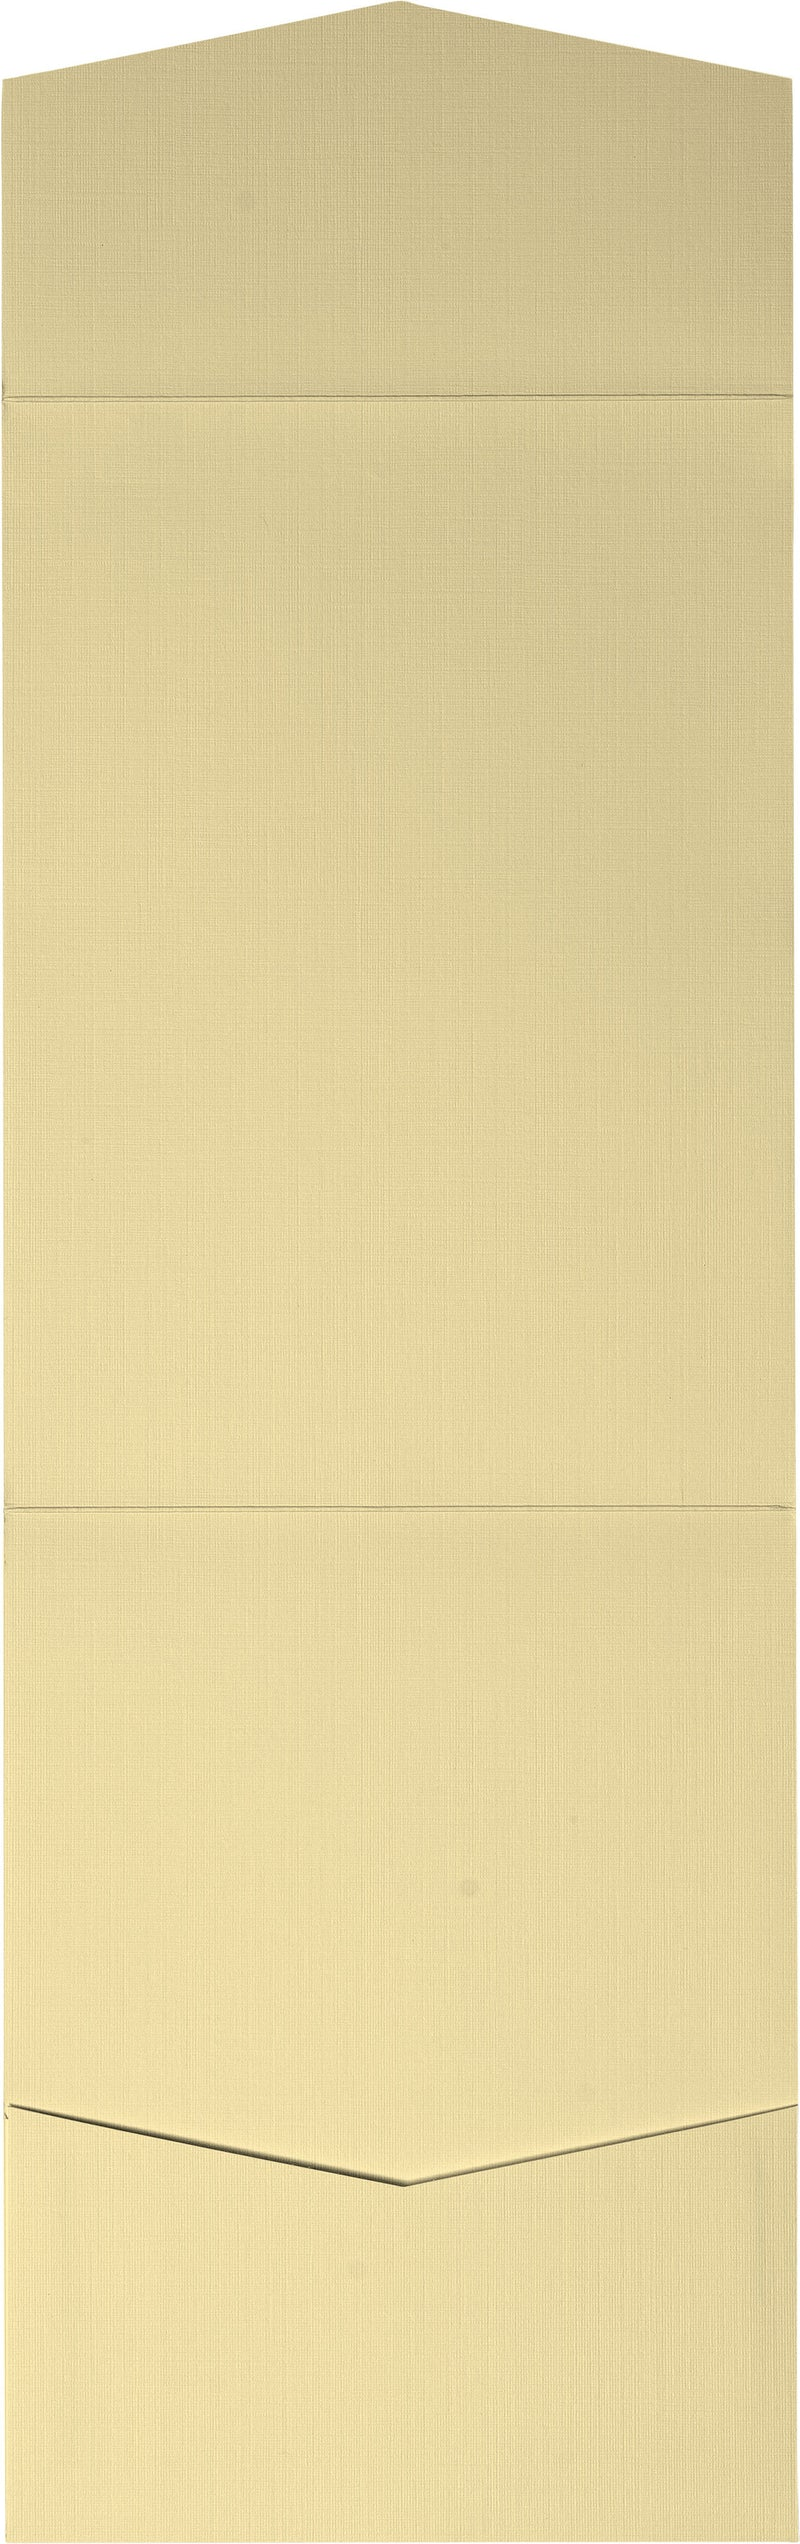 products/a7_metallic_gold_linen_cascade_open-2.jpg